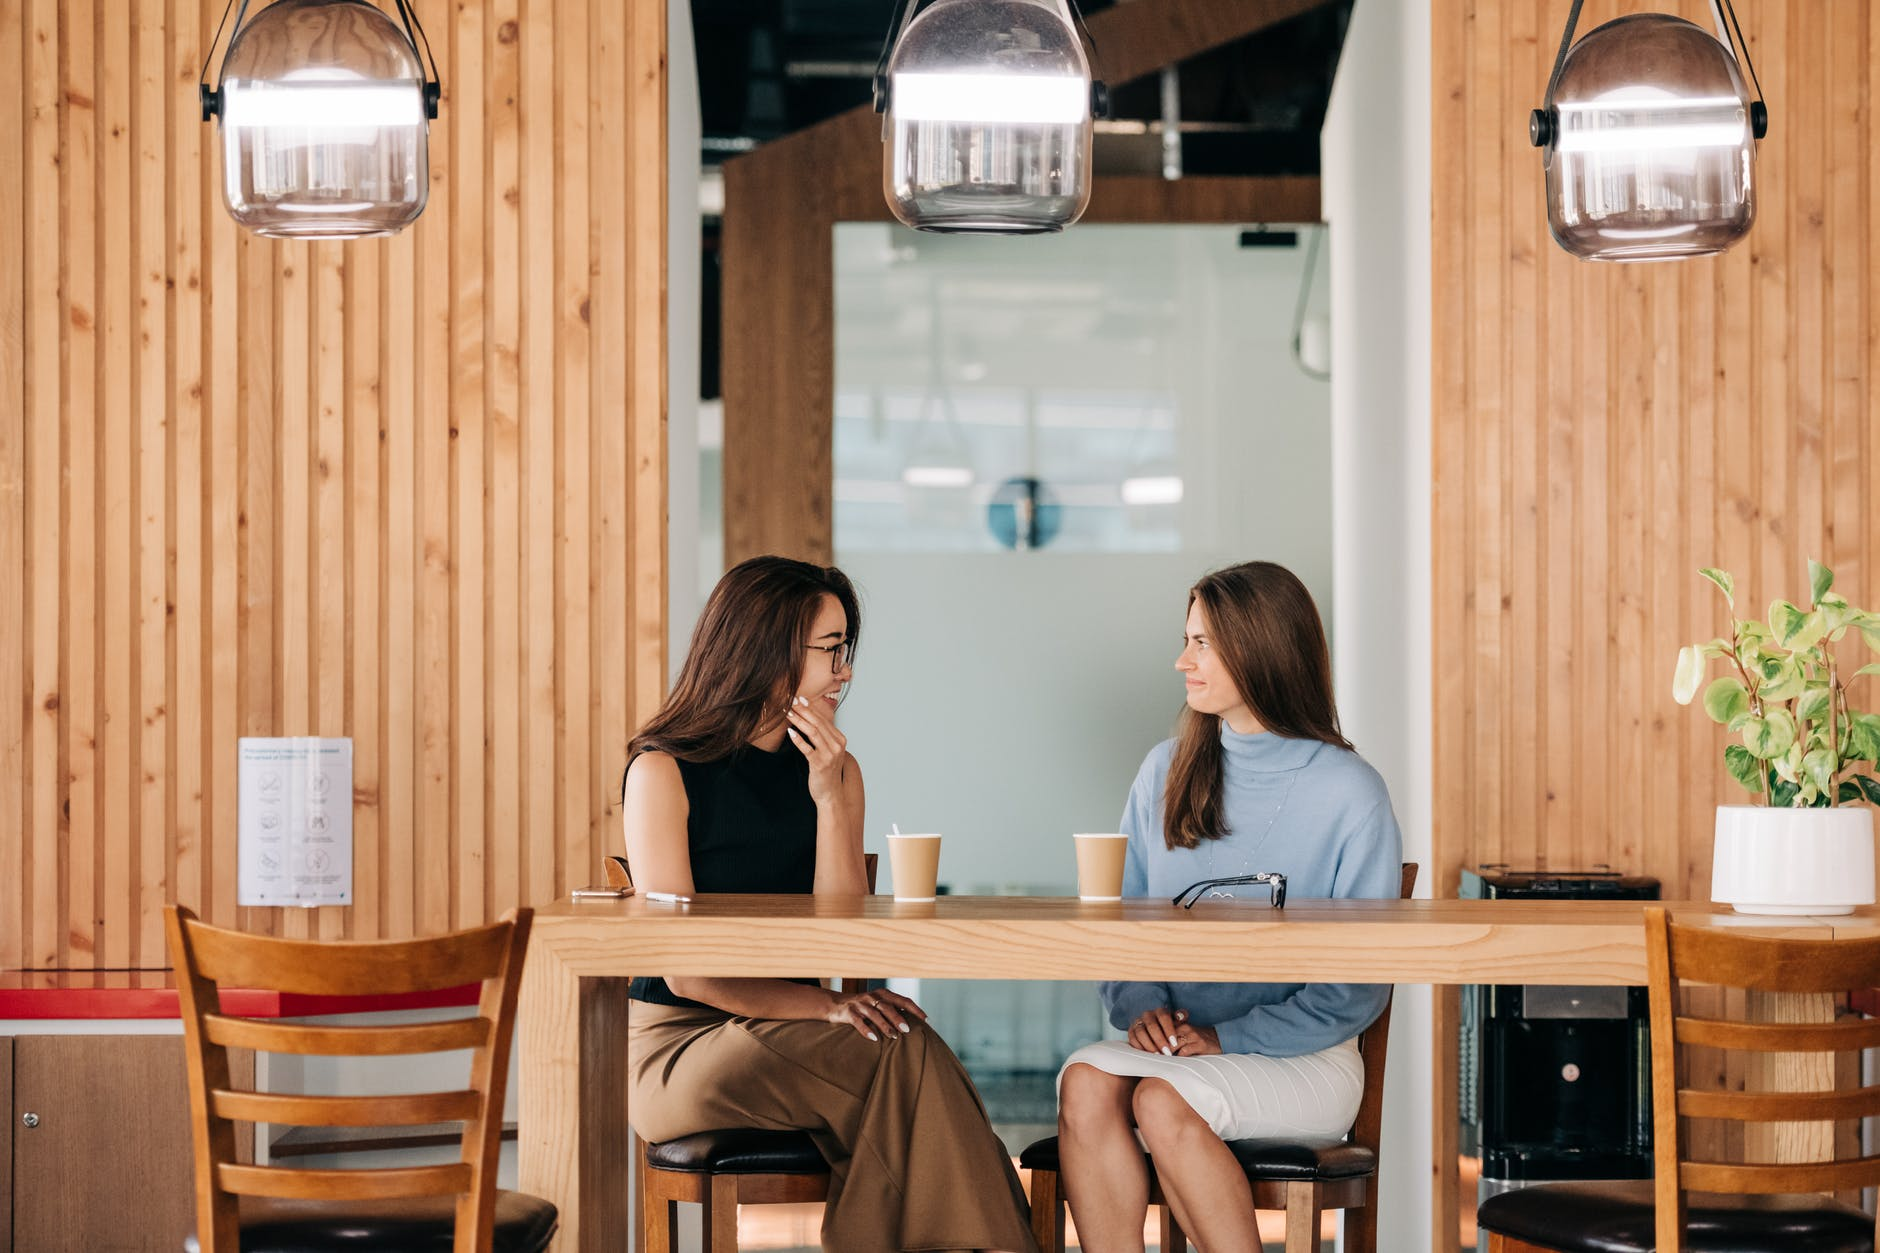 Two friends sit at a desk and chat with coffee.